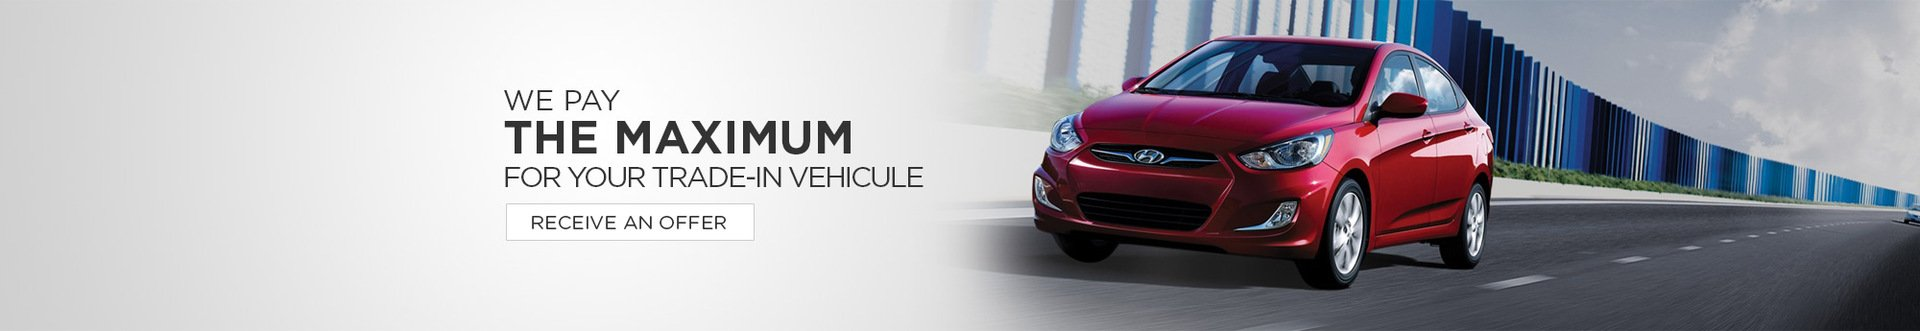 Hyundai dealer in Sherbrooke | Hyundai for sale in Sherbrooke